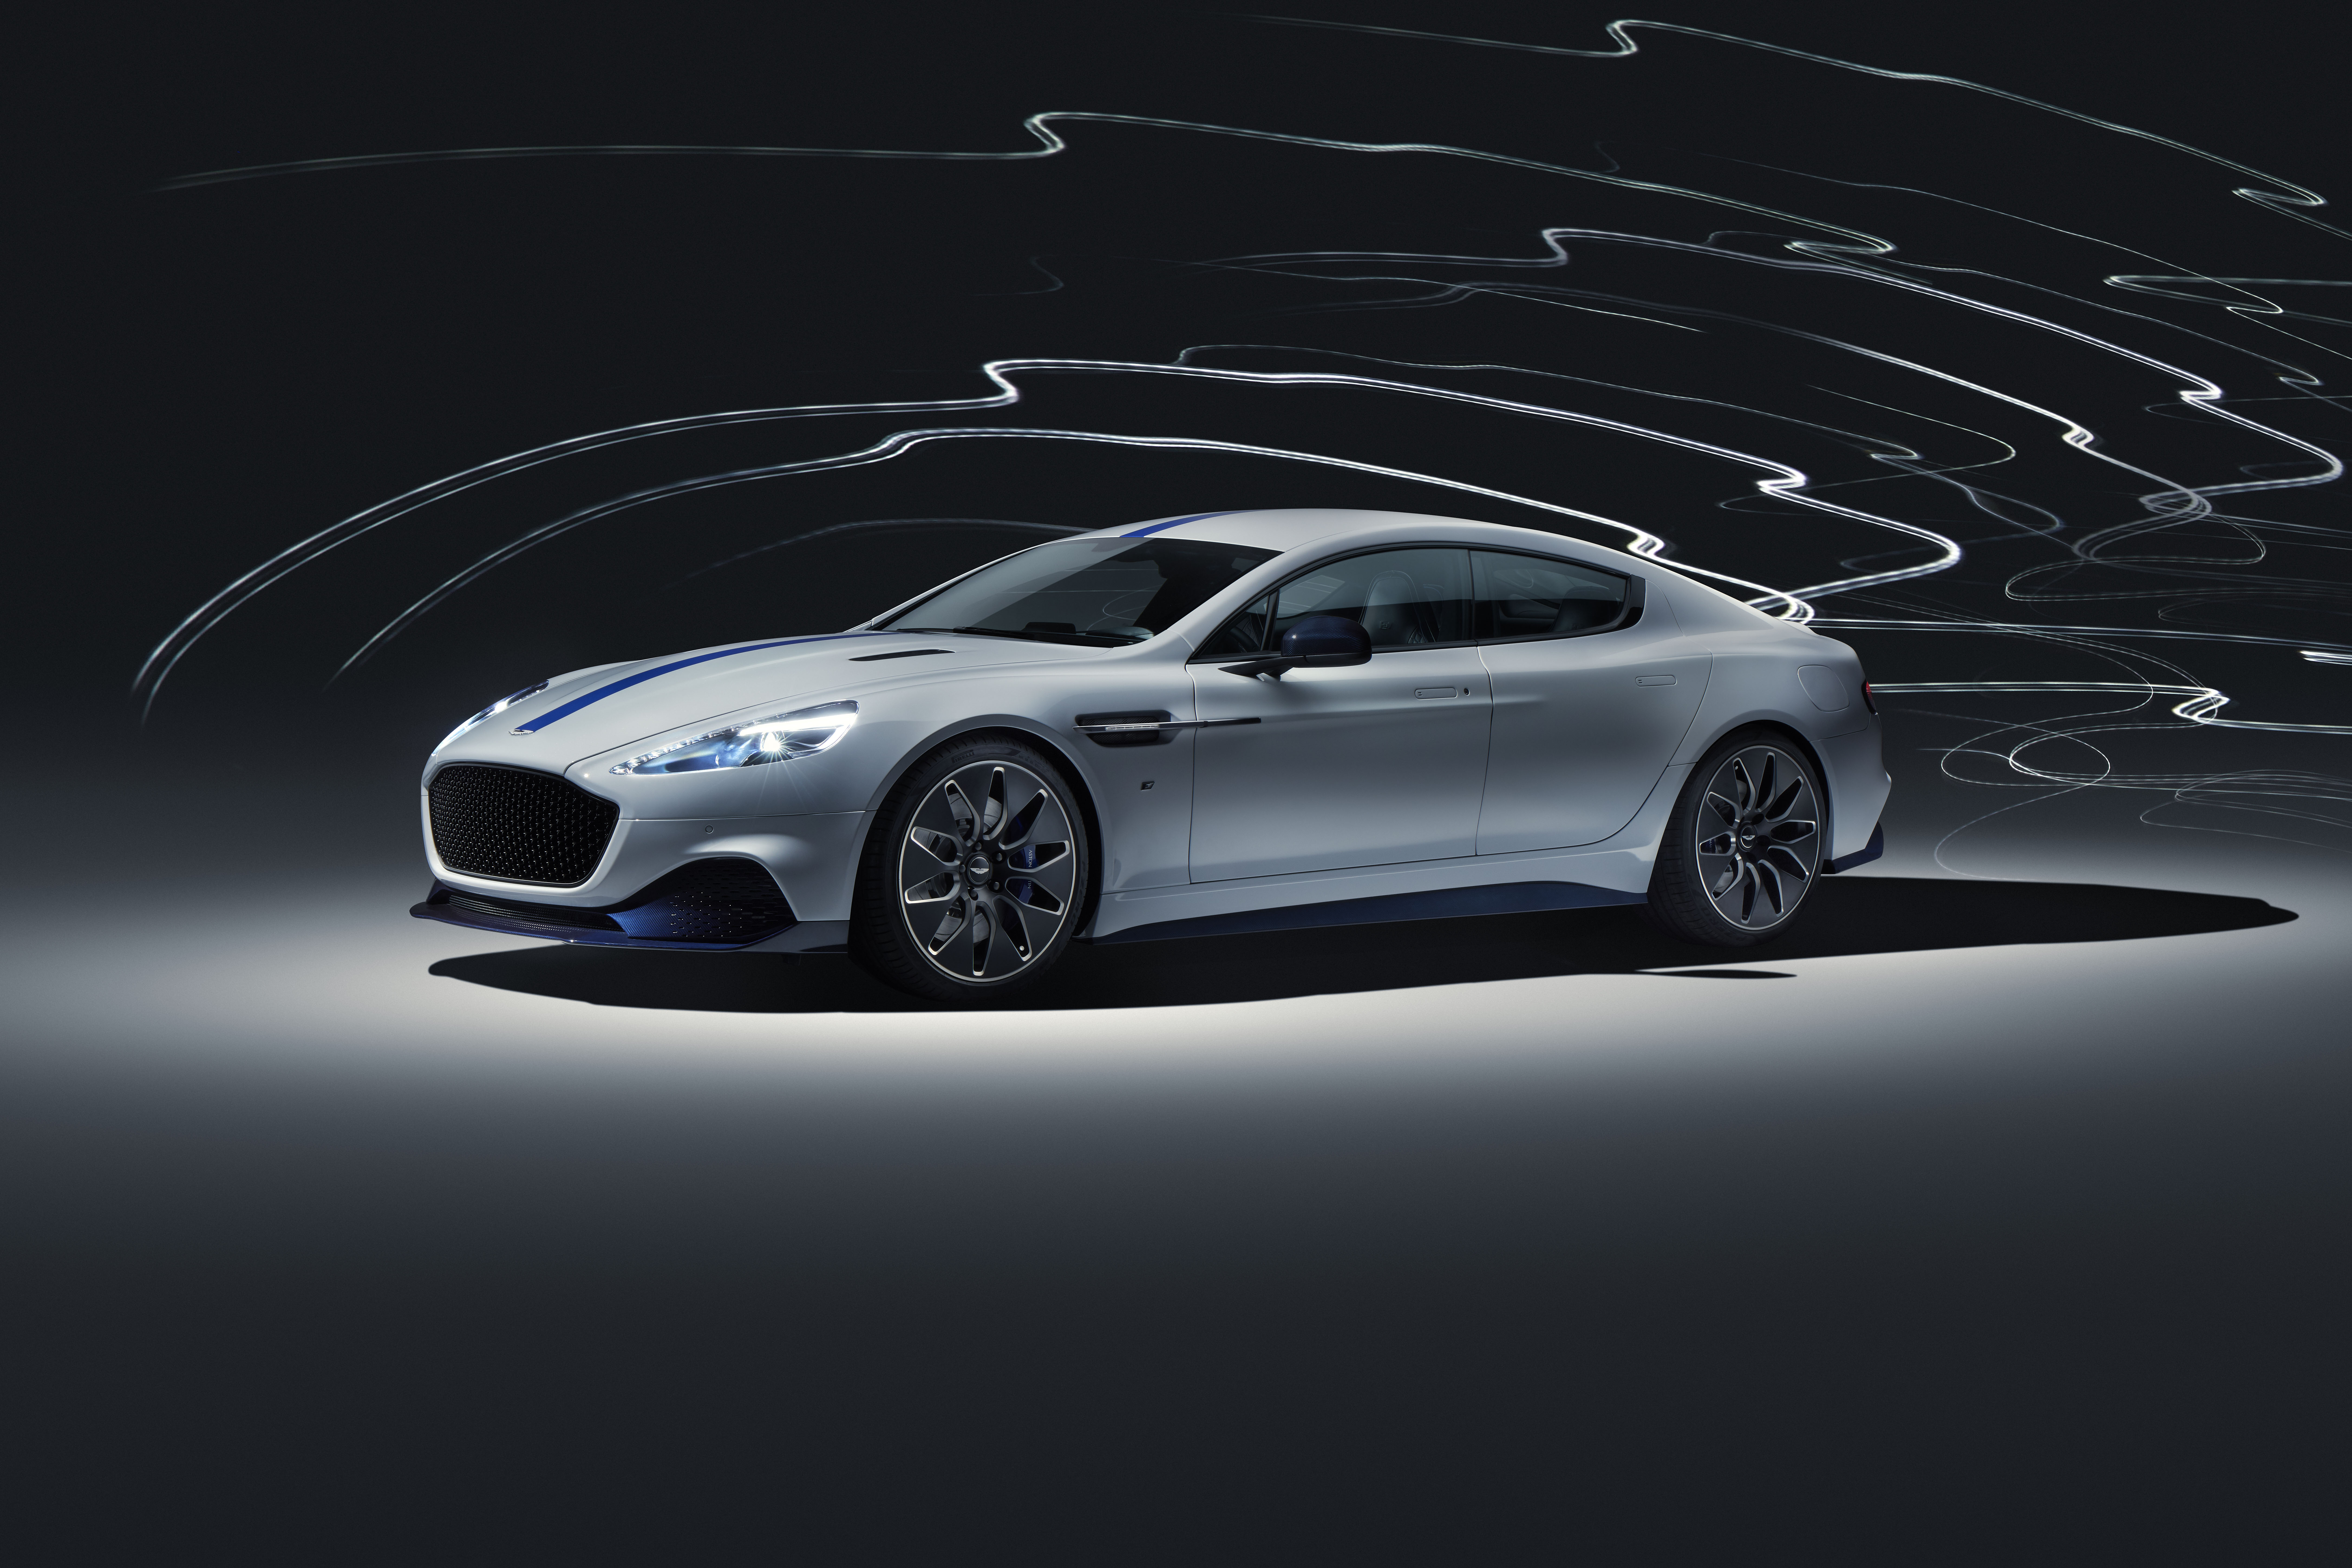 Aston Martin Rapide E 2019 Prices Specs Battery Range And Release Date The Week Uk